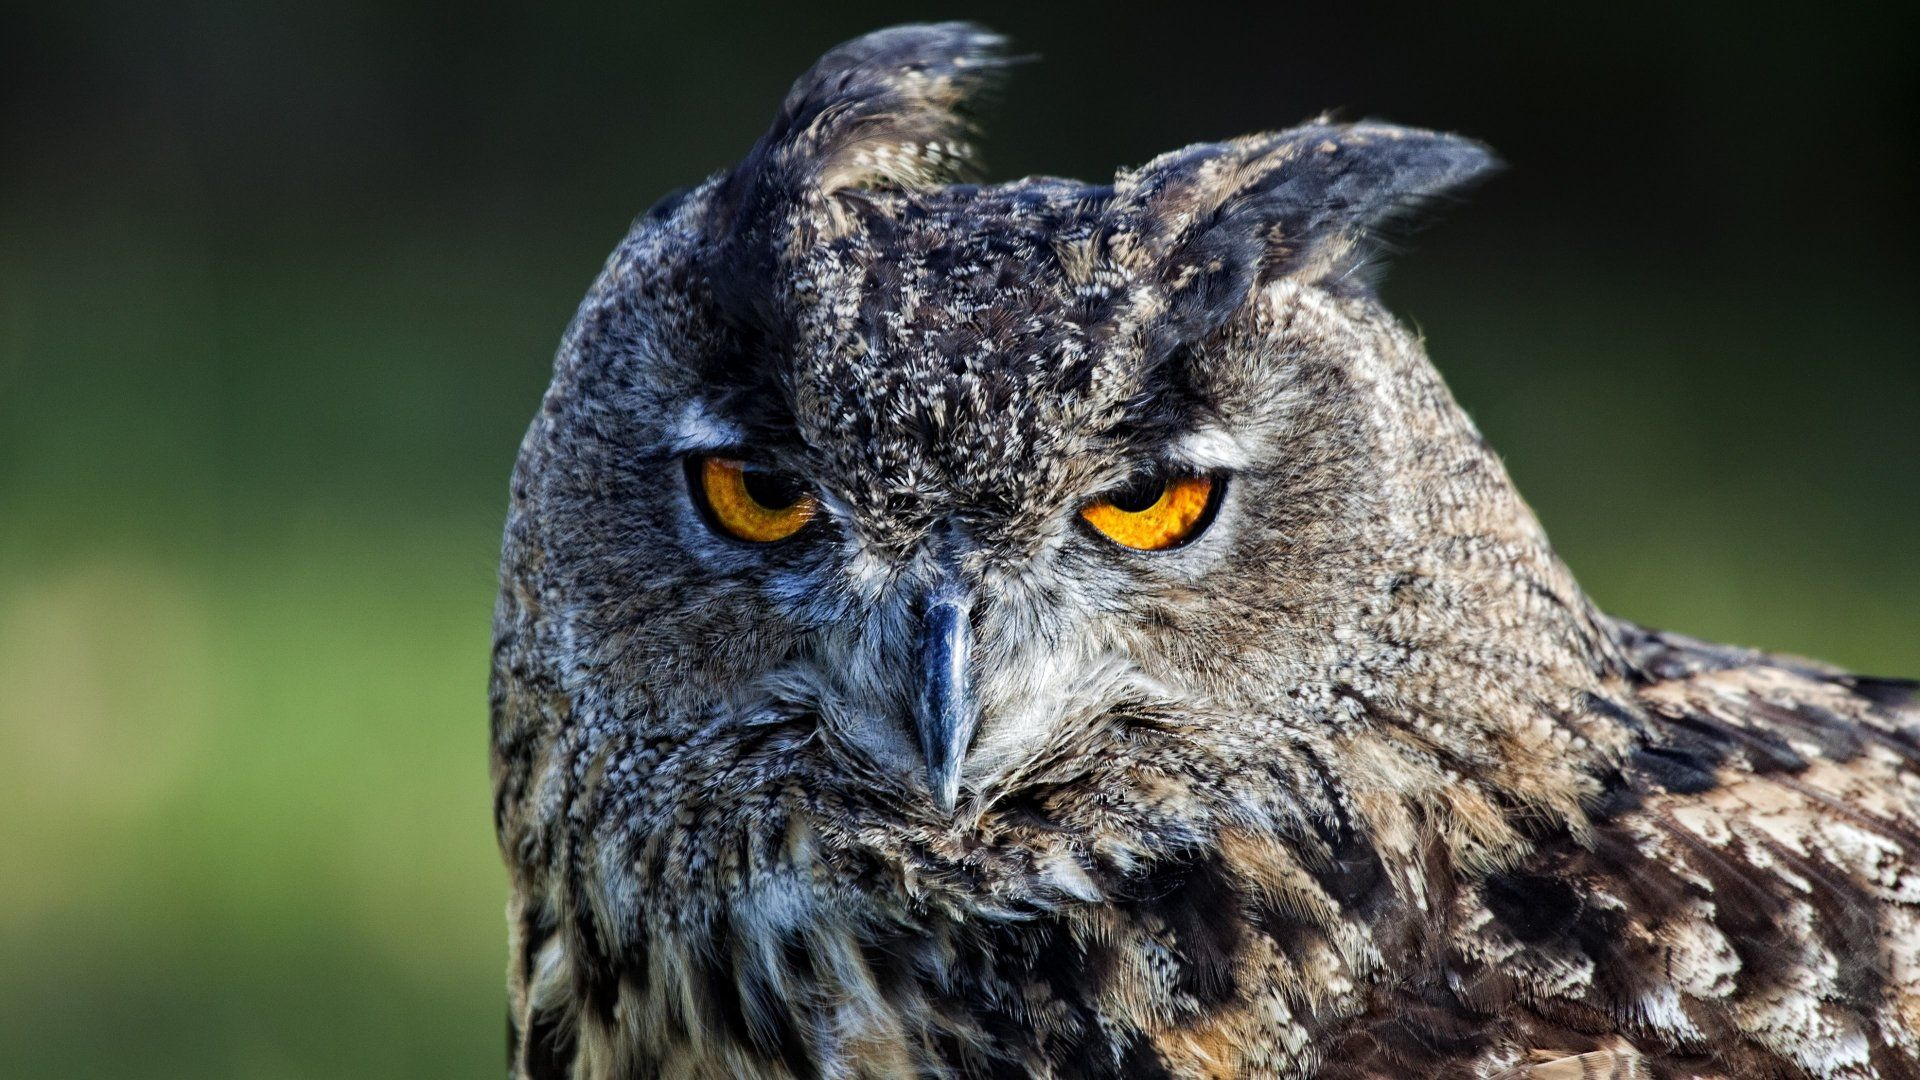 Of Wallpapers Images Owl